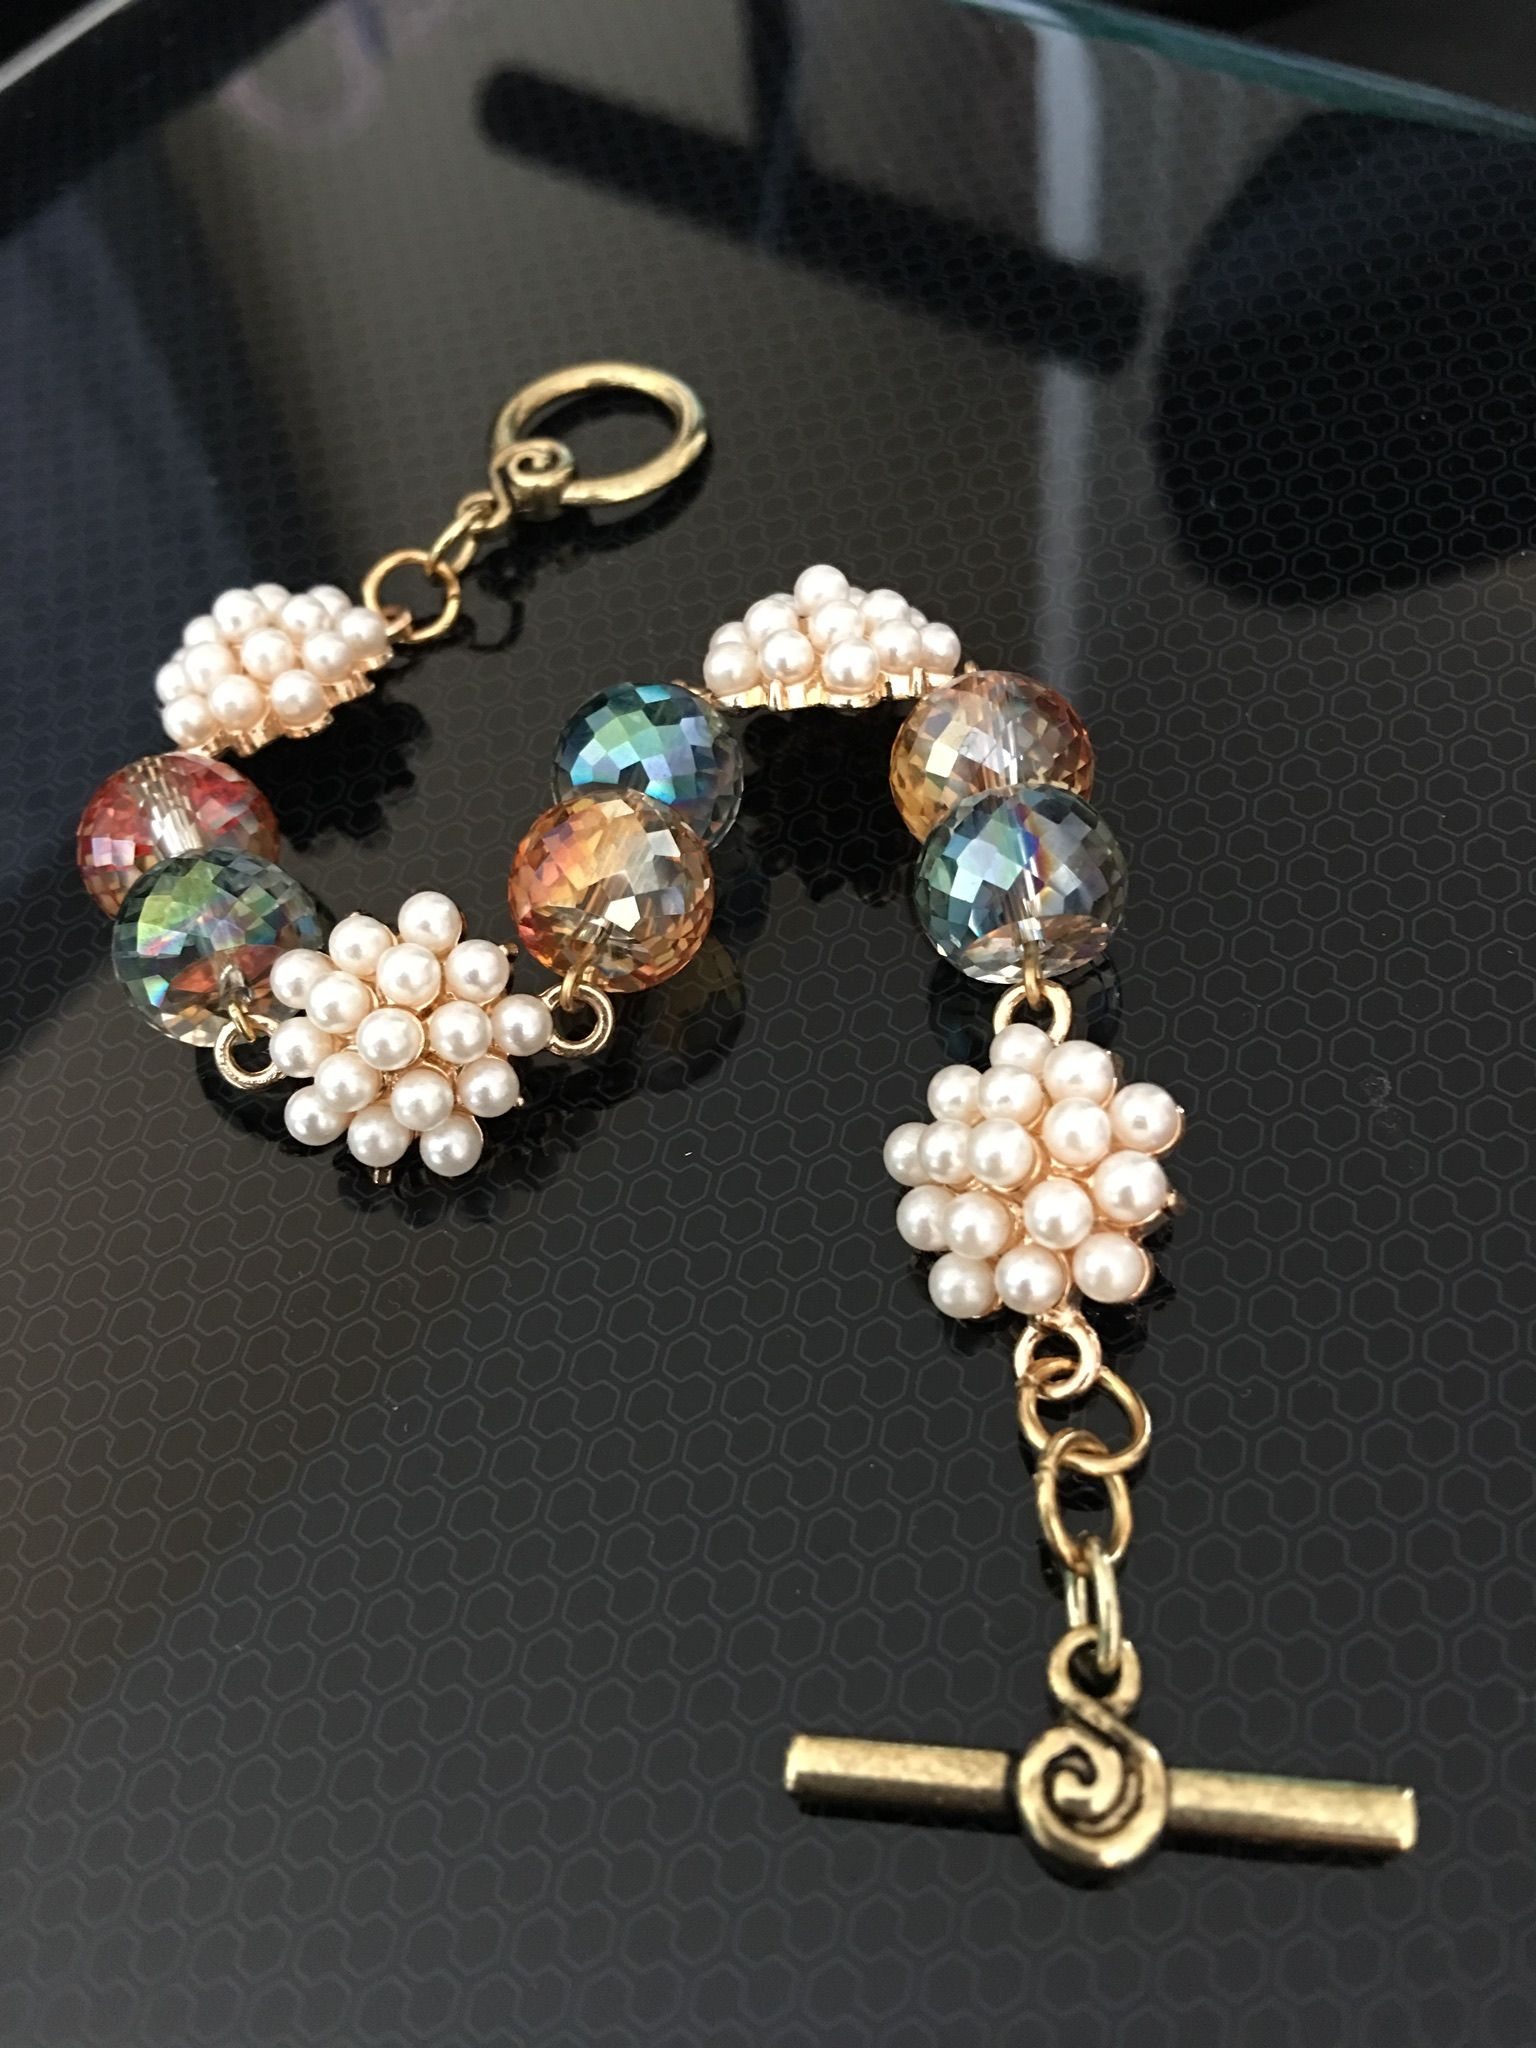 adff478cf553 The sophisticated pearl cluster bracelet